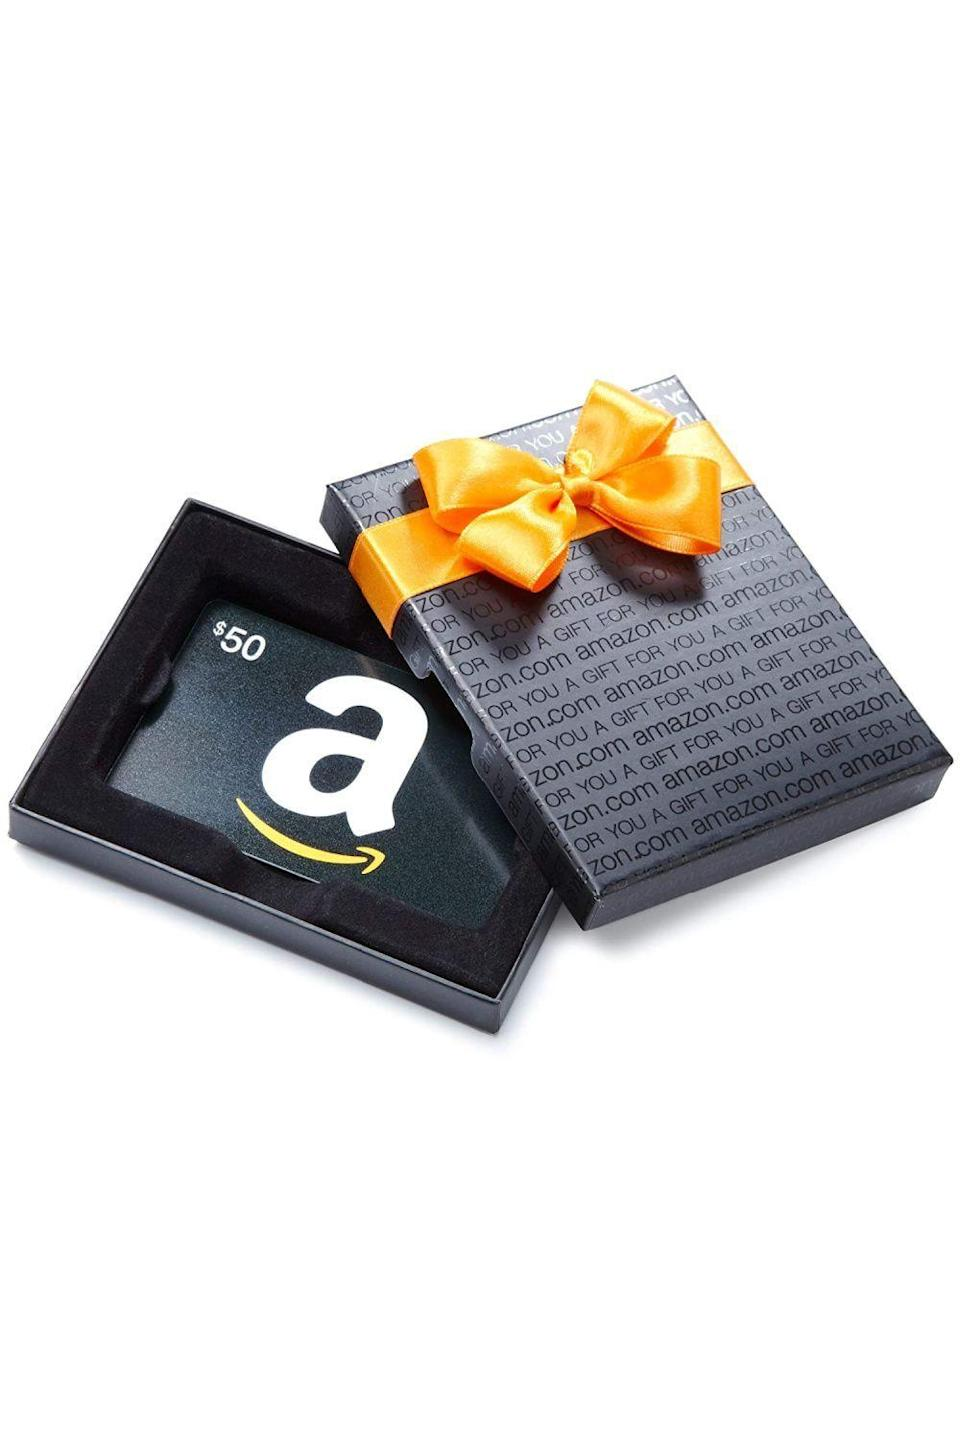 """<p><strong>Amazon</strong></p><p>amazon.com</p><p><a href=""""https://www.amazon.com/dp/B07FK995X7?tag=syn-yahoo-20&ascsubtag=%5Bartid%7C10049.g.34229001%5Bsrc%7Cyahoo-us"""" rel=""""nofollow noopener"""" target=""""_blank"""" data-ylk=""""slk:Shop Now"""" class=""""link rapid-noclick-resp"""">Shop Now</a></p><p>Sometimes people need stuff like toilet paper, but that's not really a fun Christmas gift to give. Instead, give them an Amazon gift card so they can get call the wants <em>and </em>the needs.</p>"""